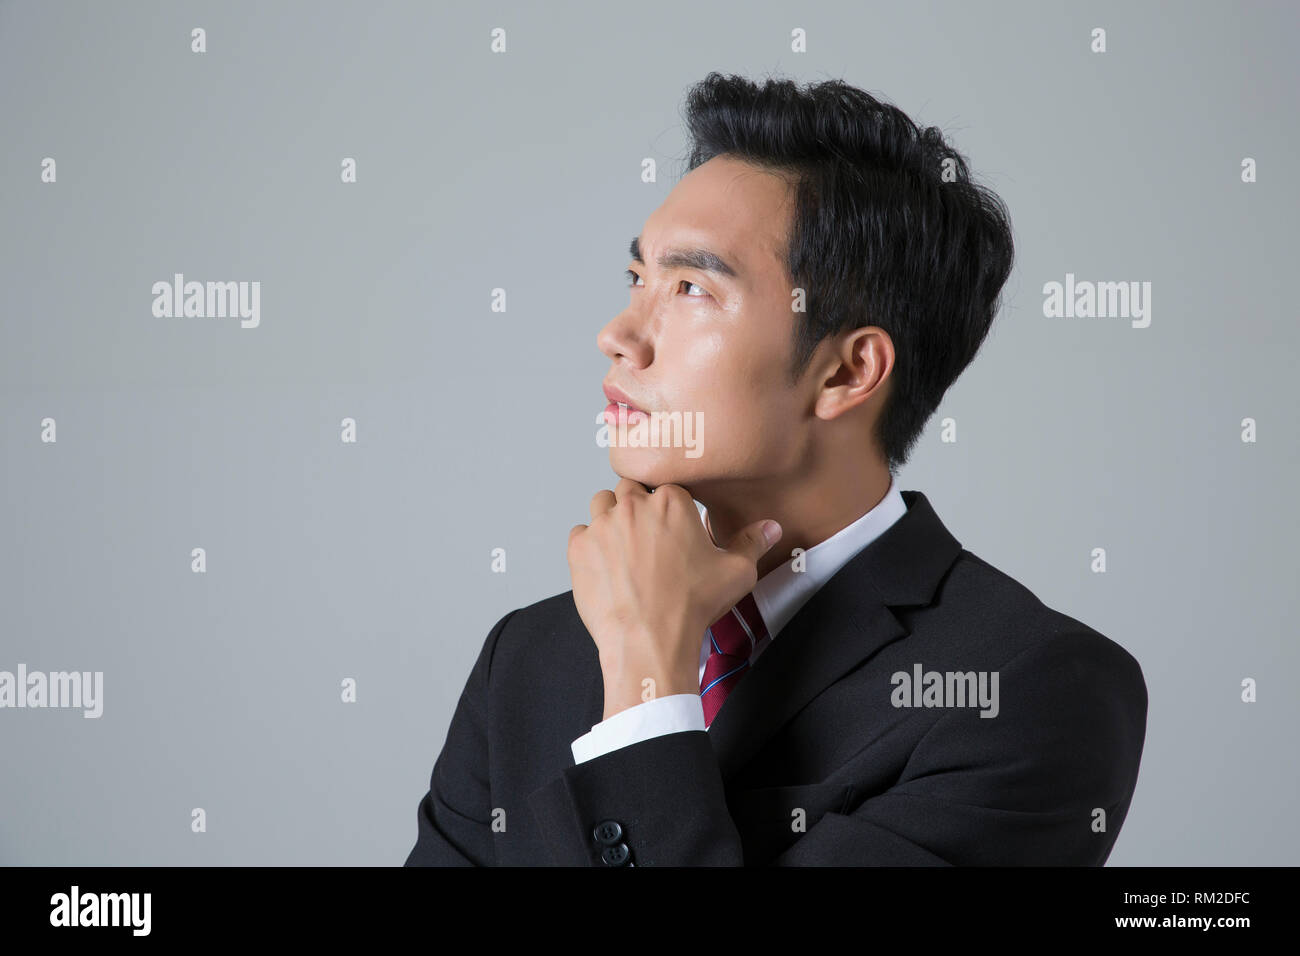 Young businessman concept photo. 041 - Stock Image